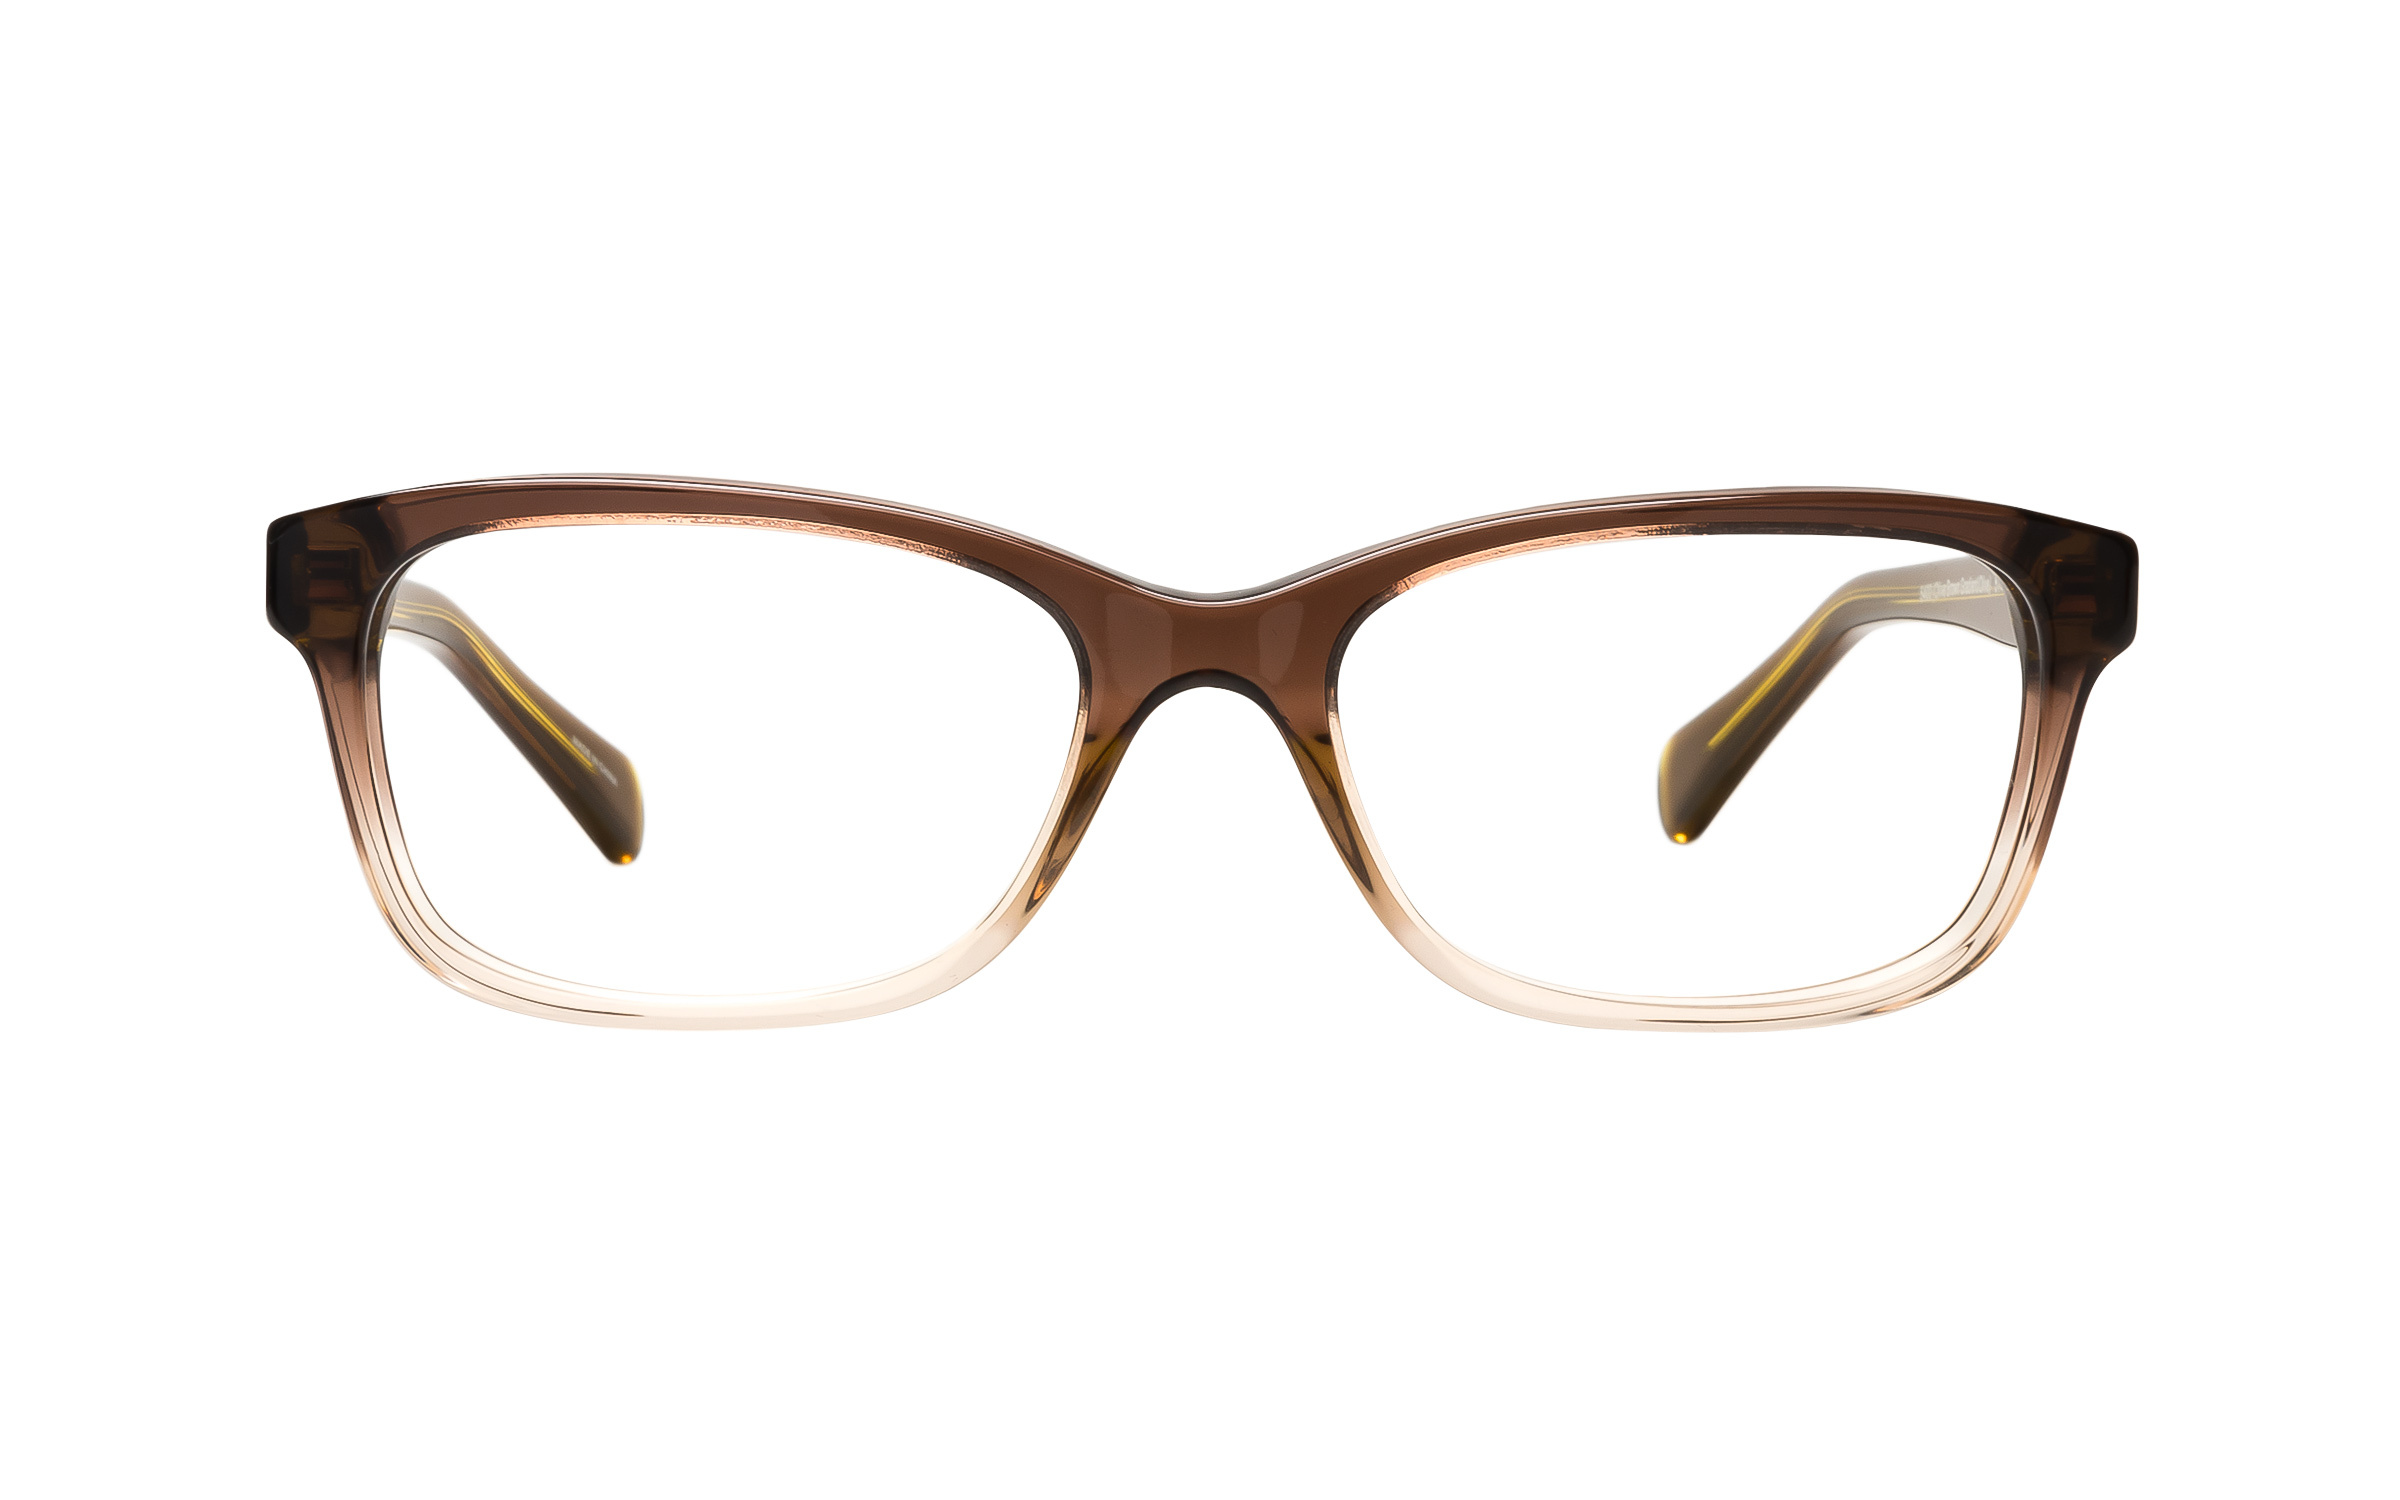 Coach Women's Brown/Green/Clear Glasses - Clearly Glasses Online